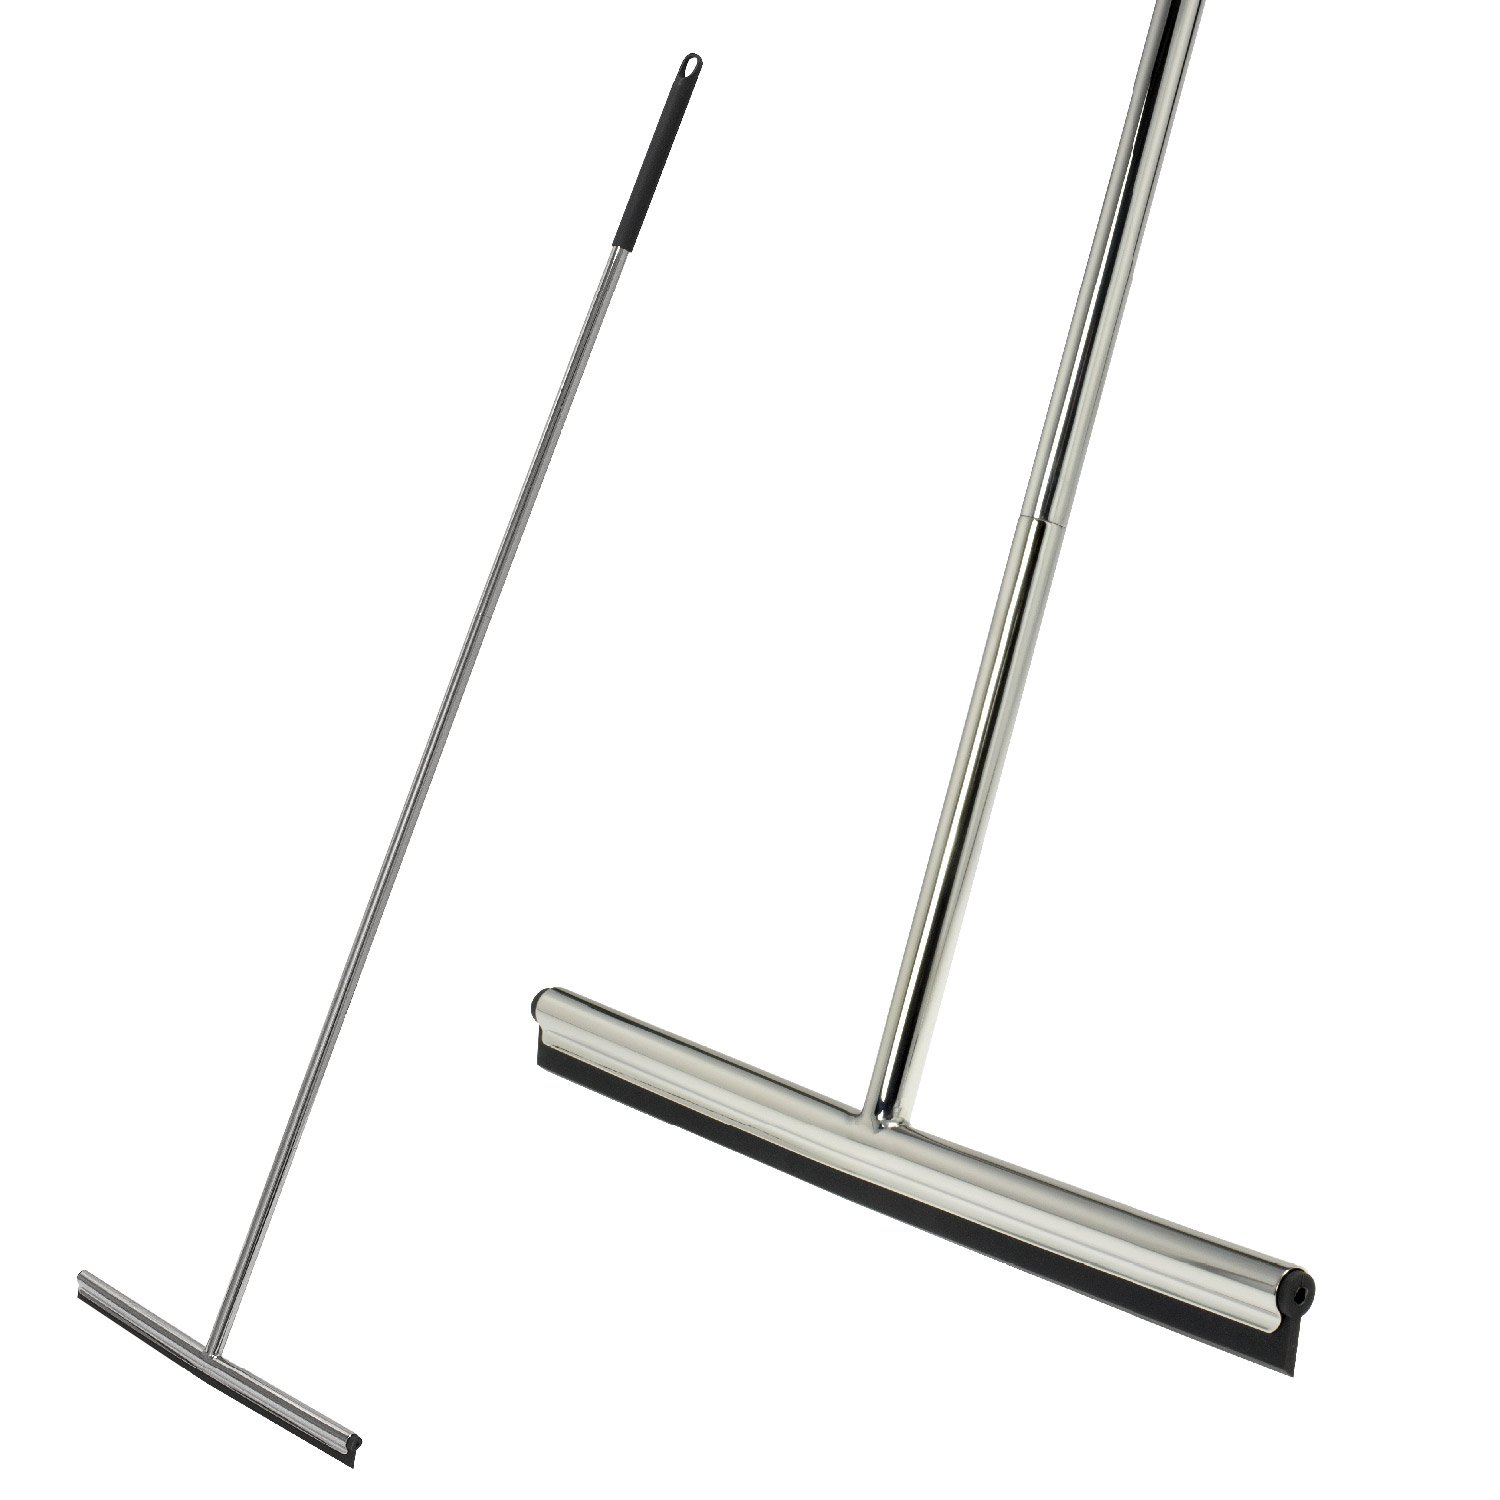 bremermann floor squeegee with wall-mount, made from polished stainless steel and silicone